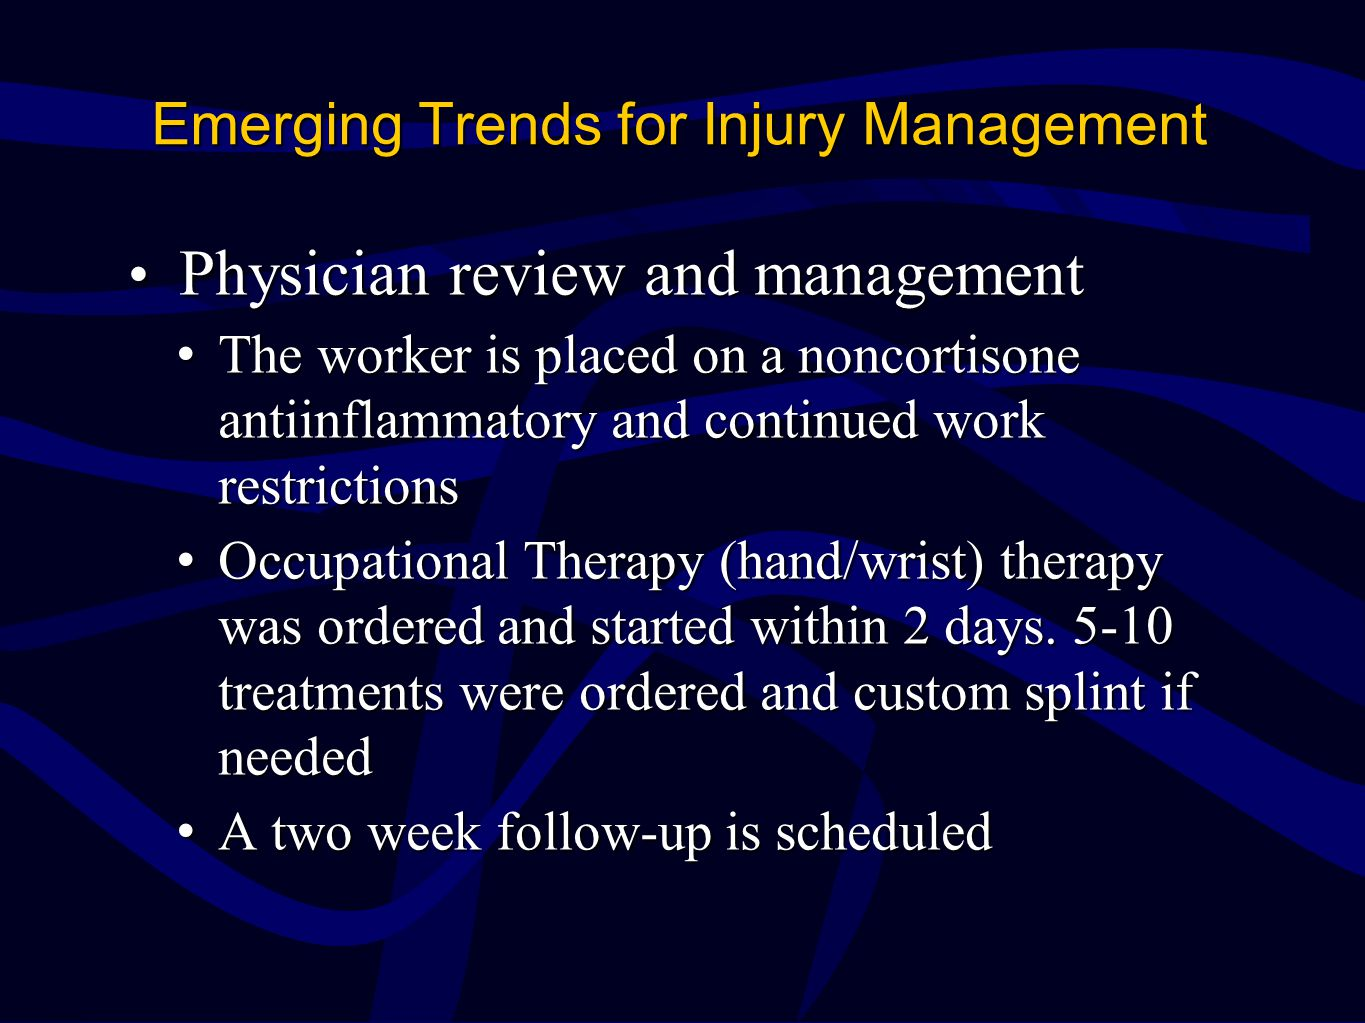 Emerging Trends for Injury Management Physician review and management Physician review and management The worker is placed on a noncortisone antiinfla